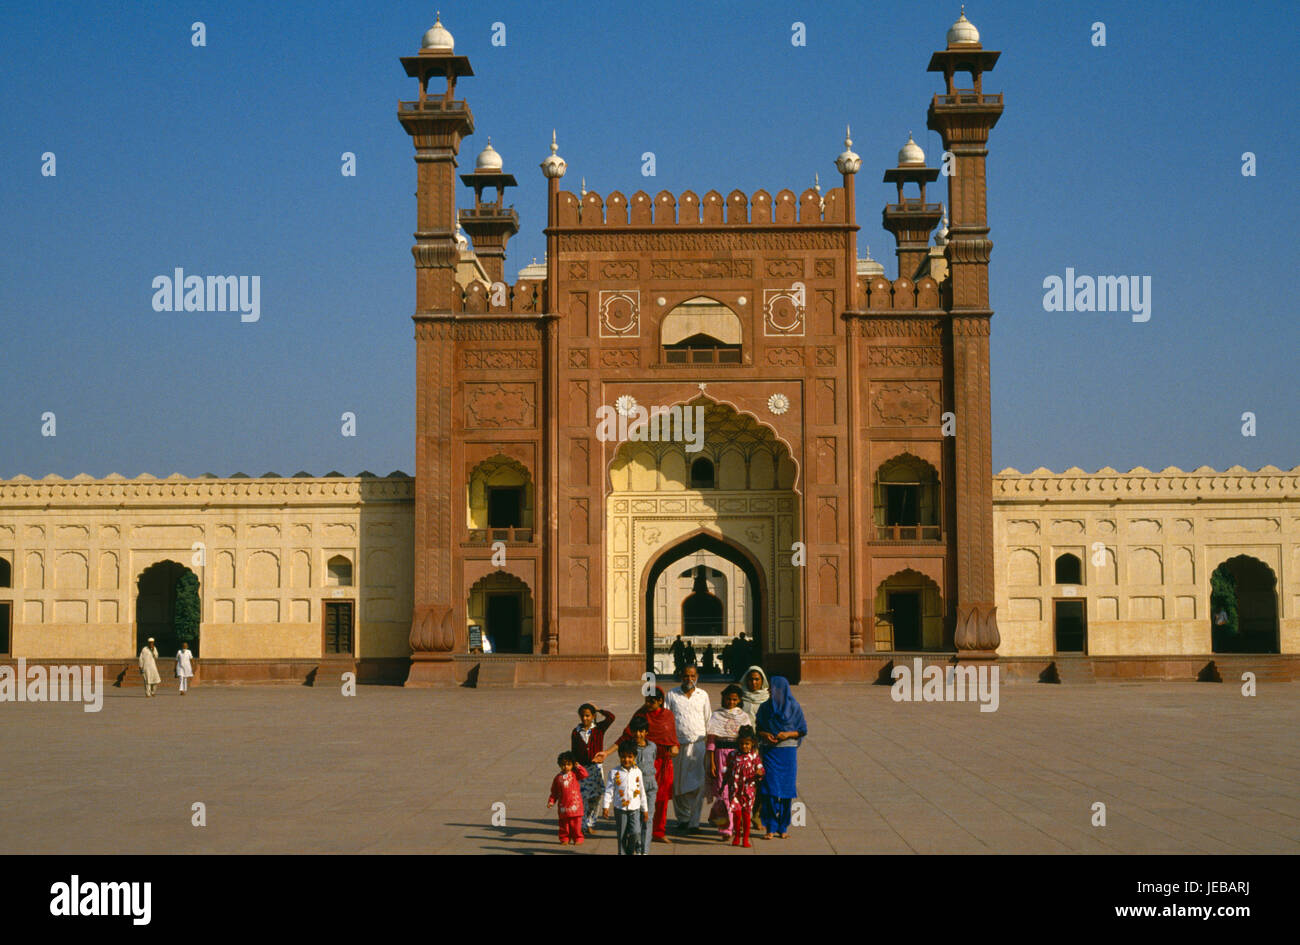 Pakistan, Punjab, Lahore, Badshahi mosque. Family standing in courtyard outside entrance of mosque attached to the - Stock Image